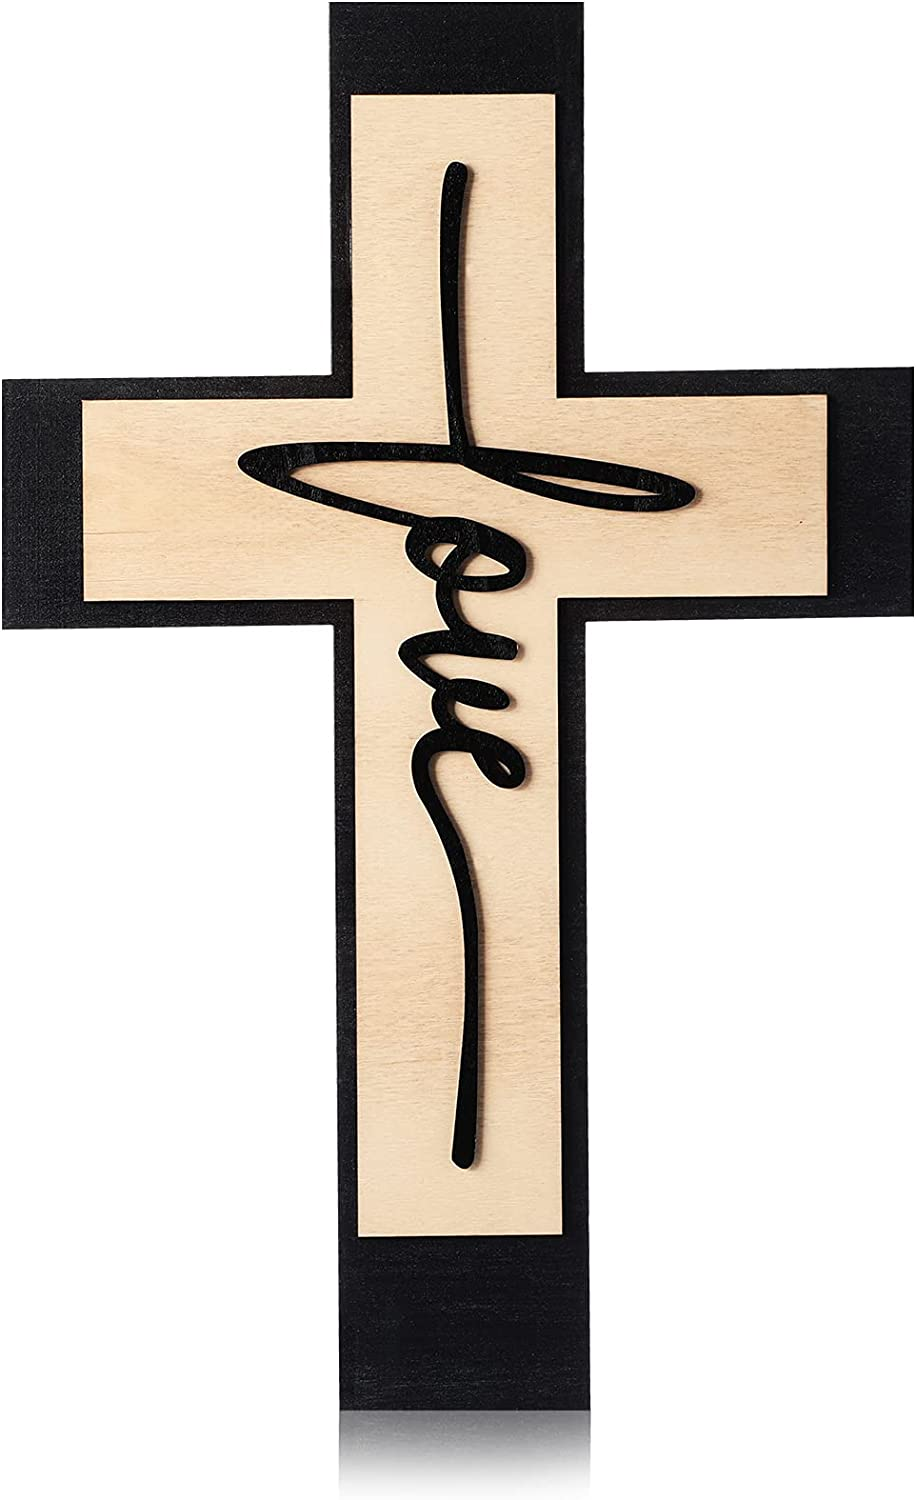 Jetec Wooden Hanging Wall Cross Wall Love Decor, Large Decorative Love Wall Art Cross Wood Rustic Home Hanging Decor for Home Room Garden Yard Supplies, 16 x 10 Inch